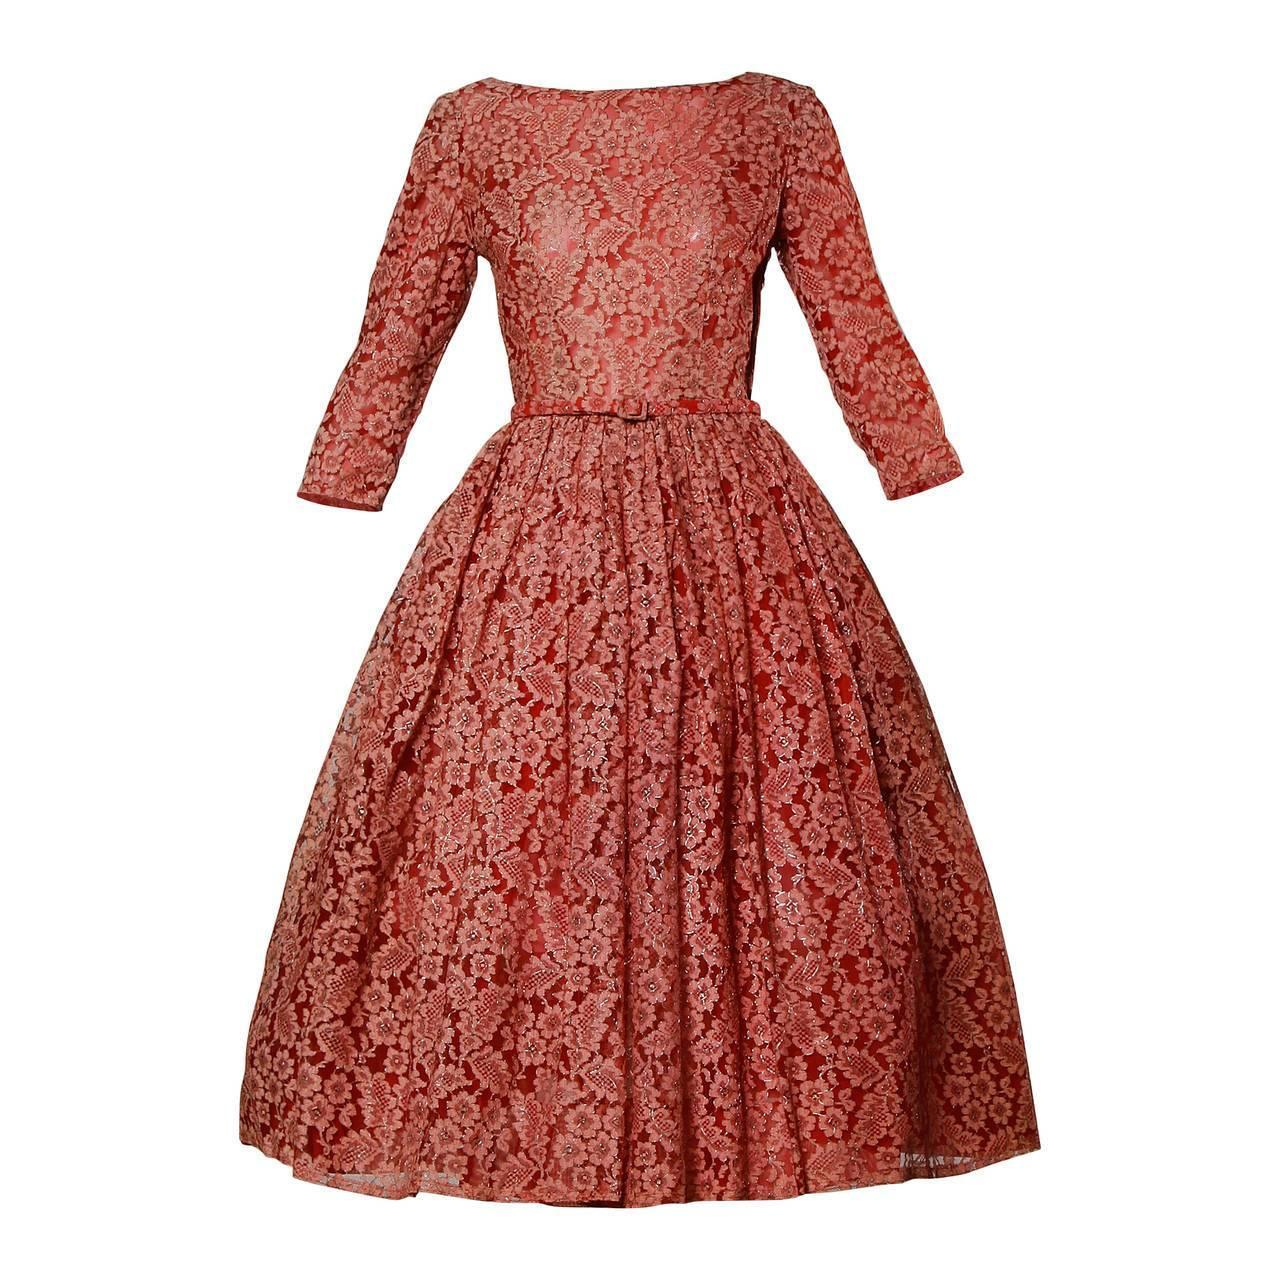 1950s vintage red lace cocktail dress with belt at 1stdibs